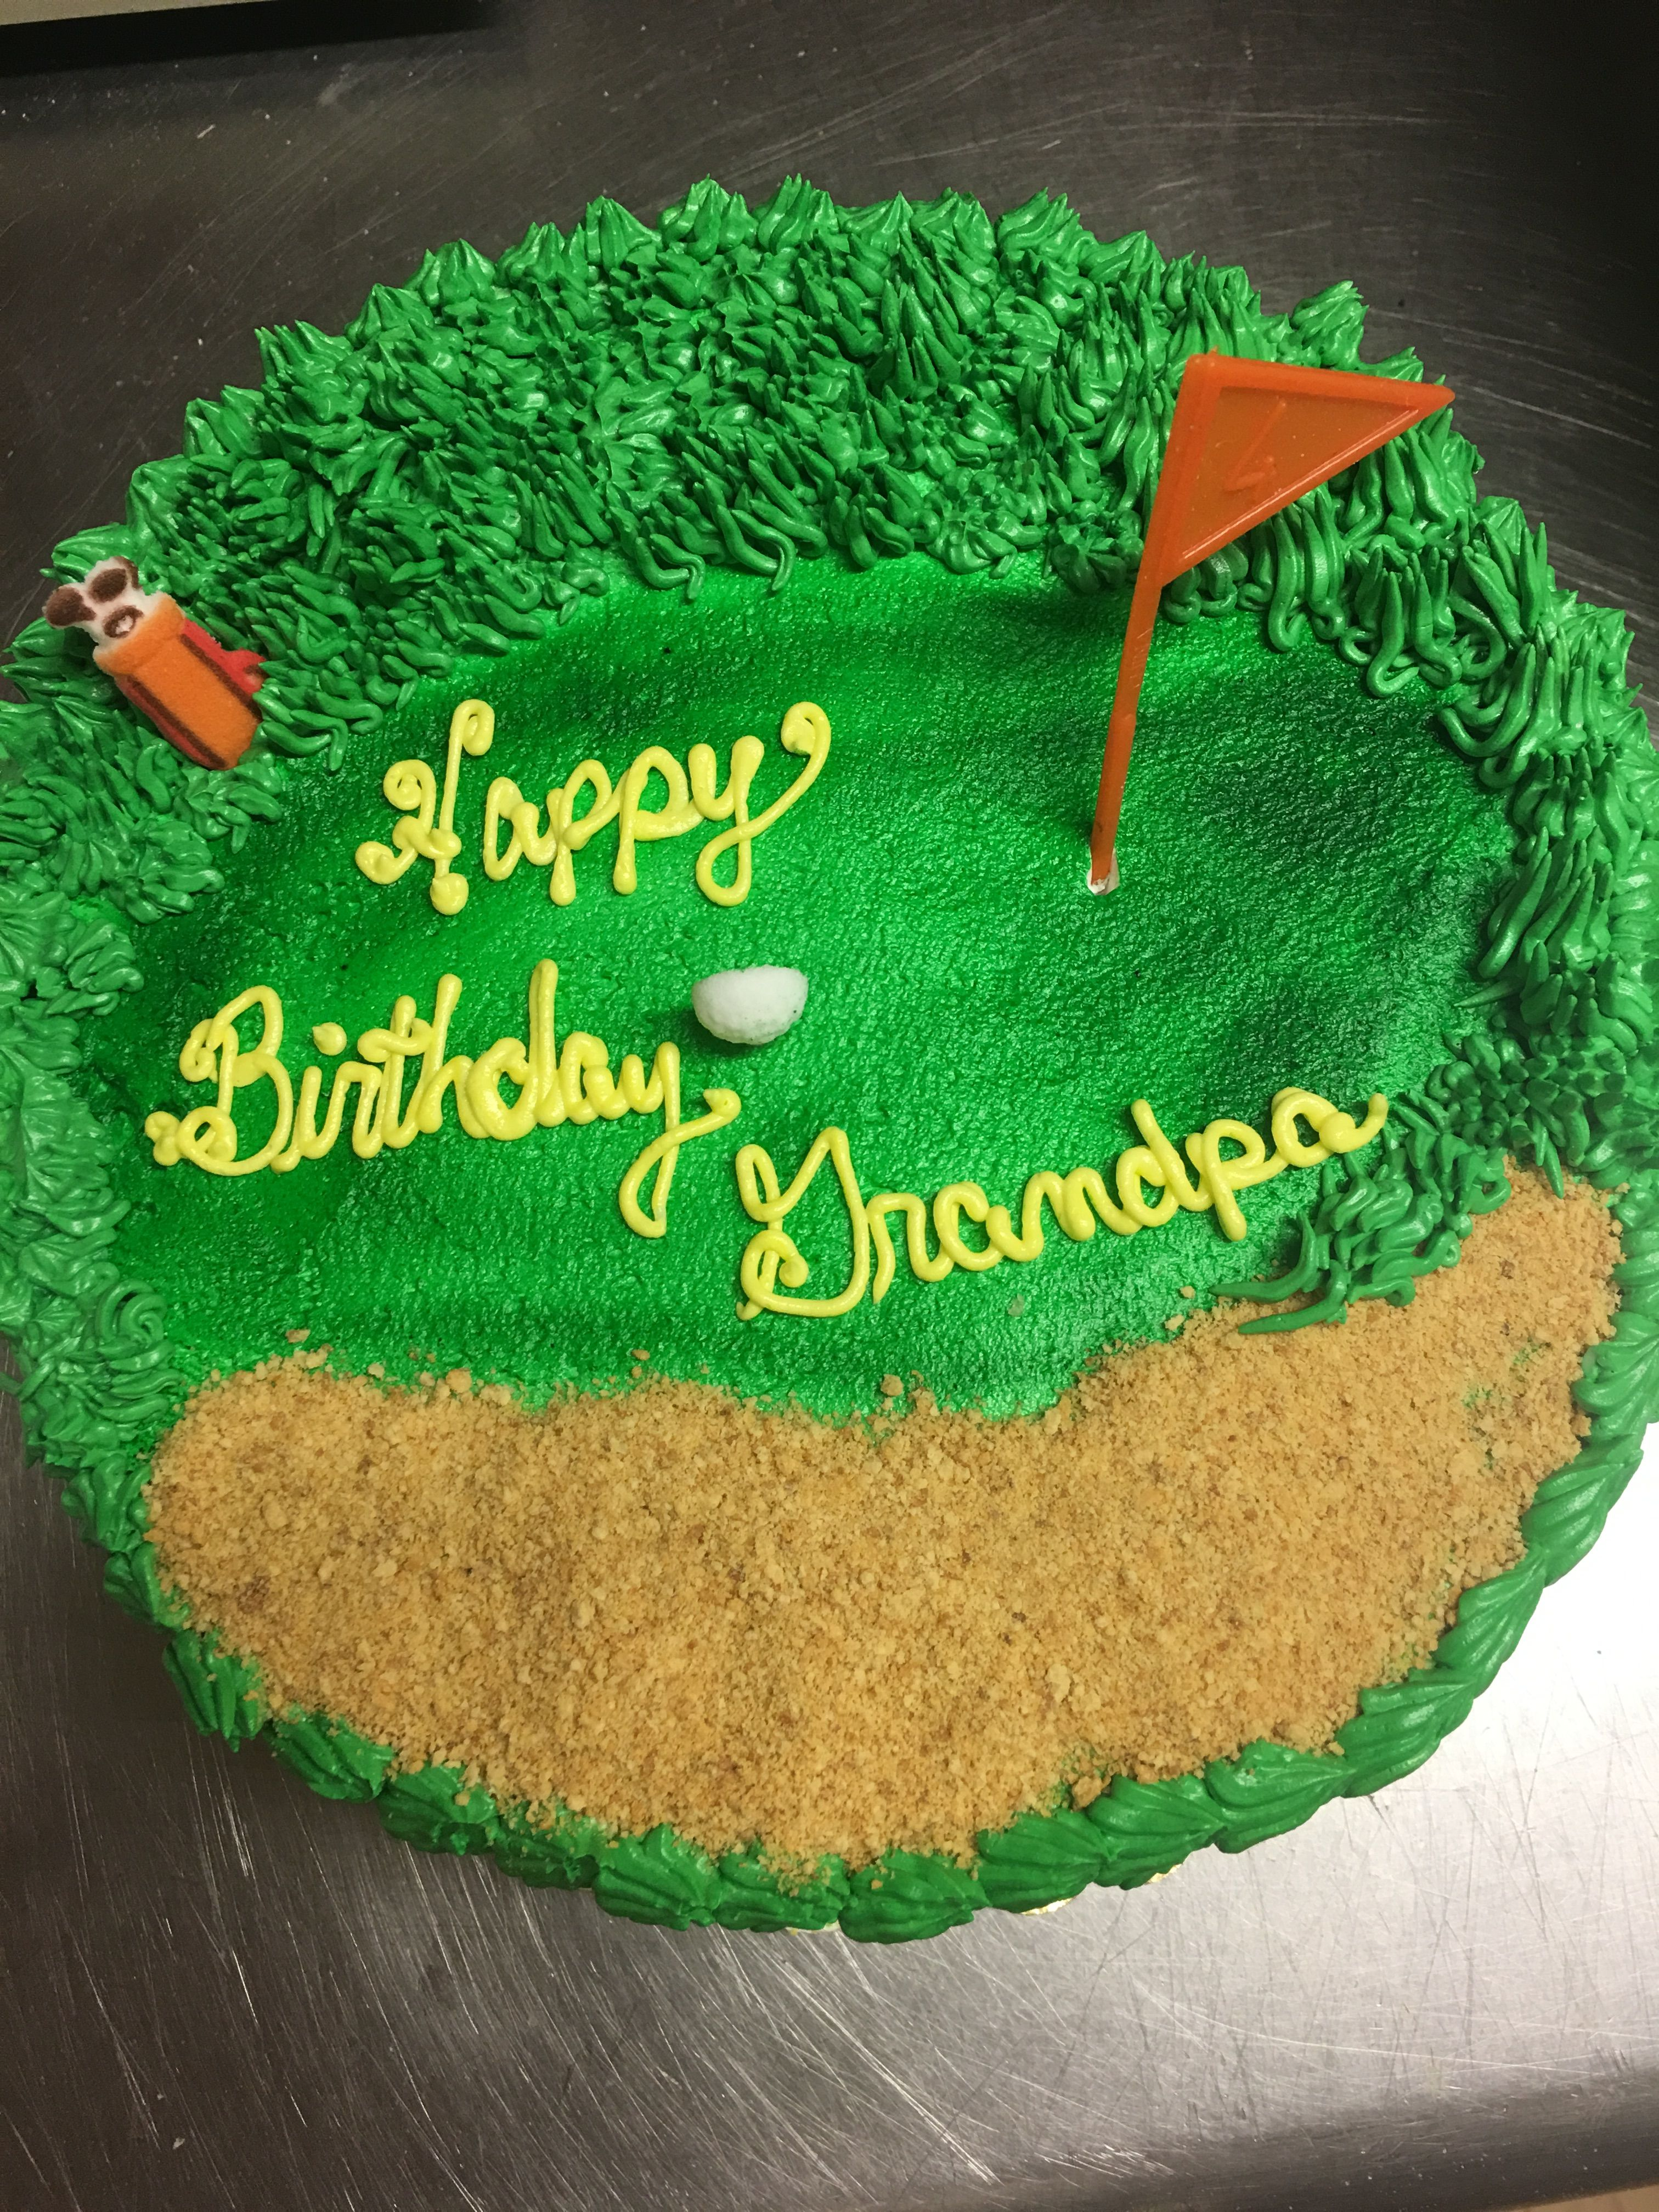 Fine Golf Scene Birthday Cake Muellers Bakery With Images Adult Funny Birthday Cards Online Drosicarndamsfinfo